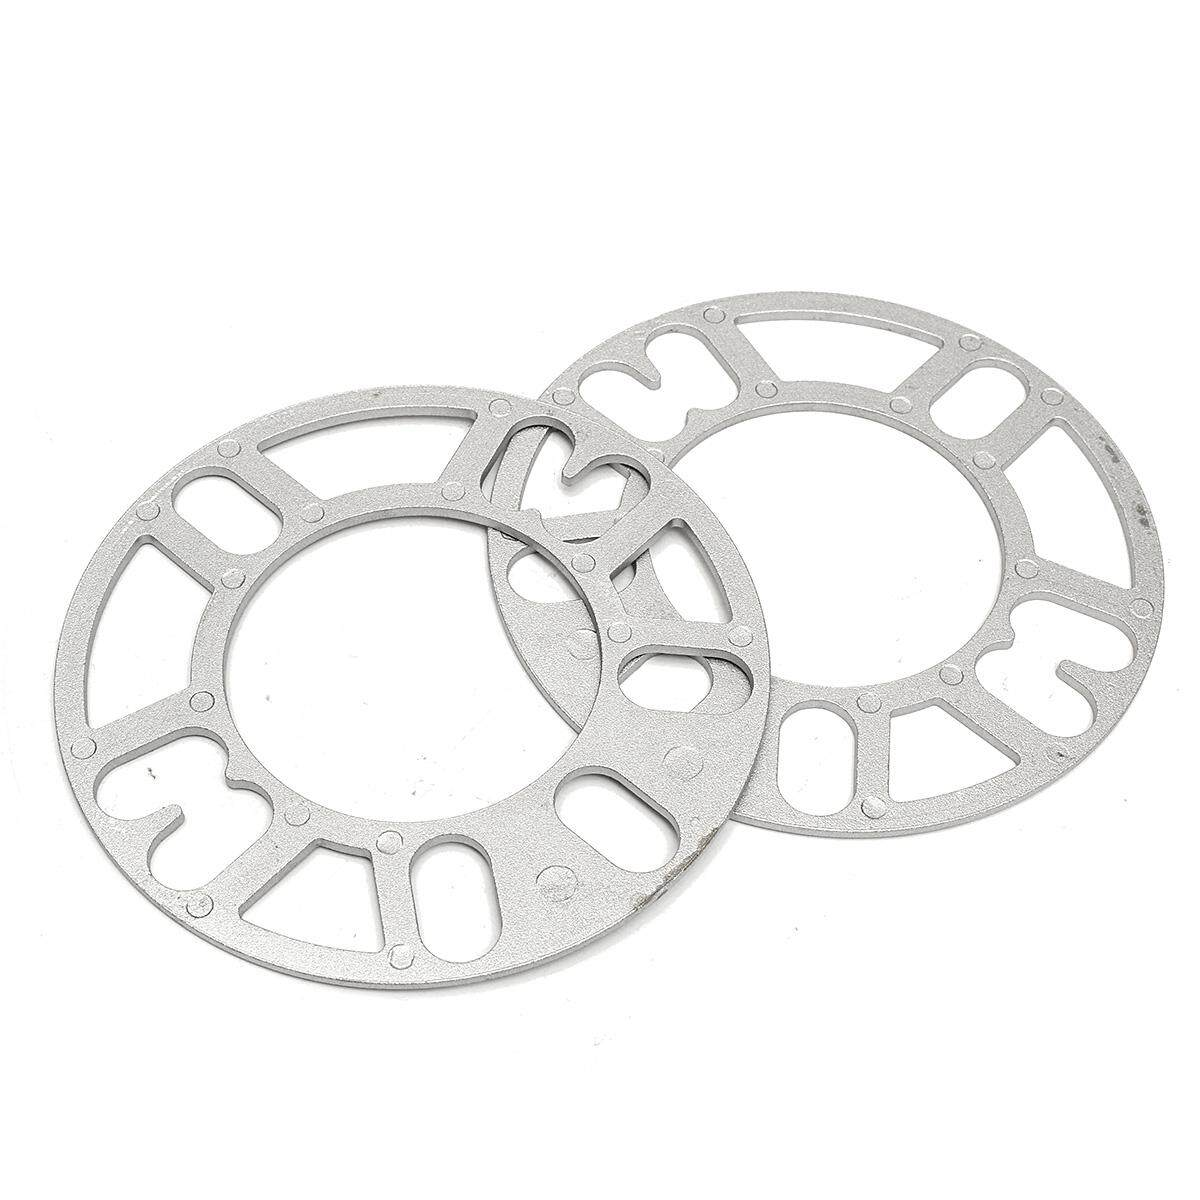 2x Wheel Spacer 3mm Thick Stud Spacer For 4&5-Studs 4x100 4x114 5x100 5x114 112 New By Glimmer.